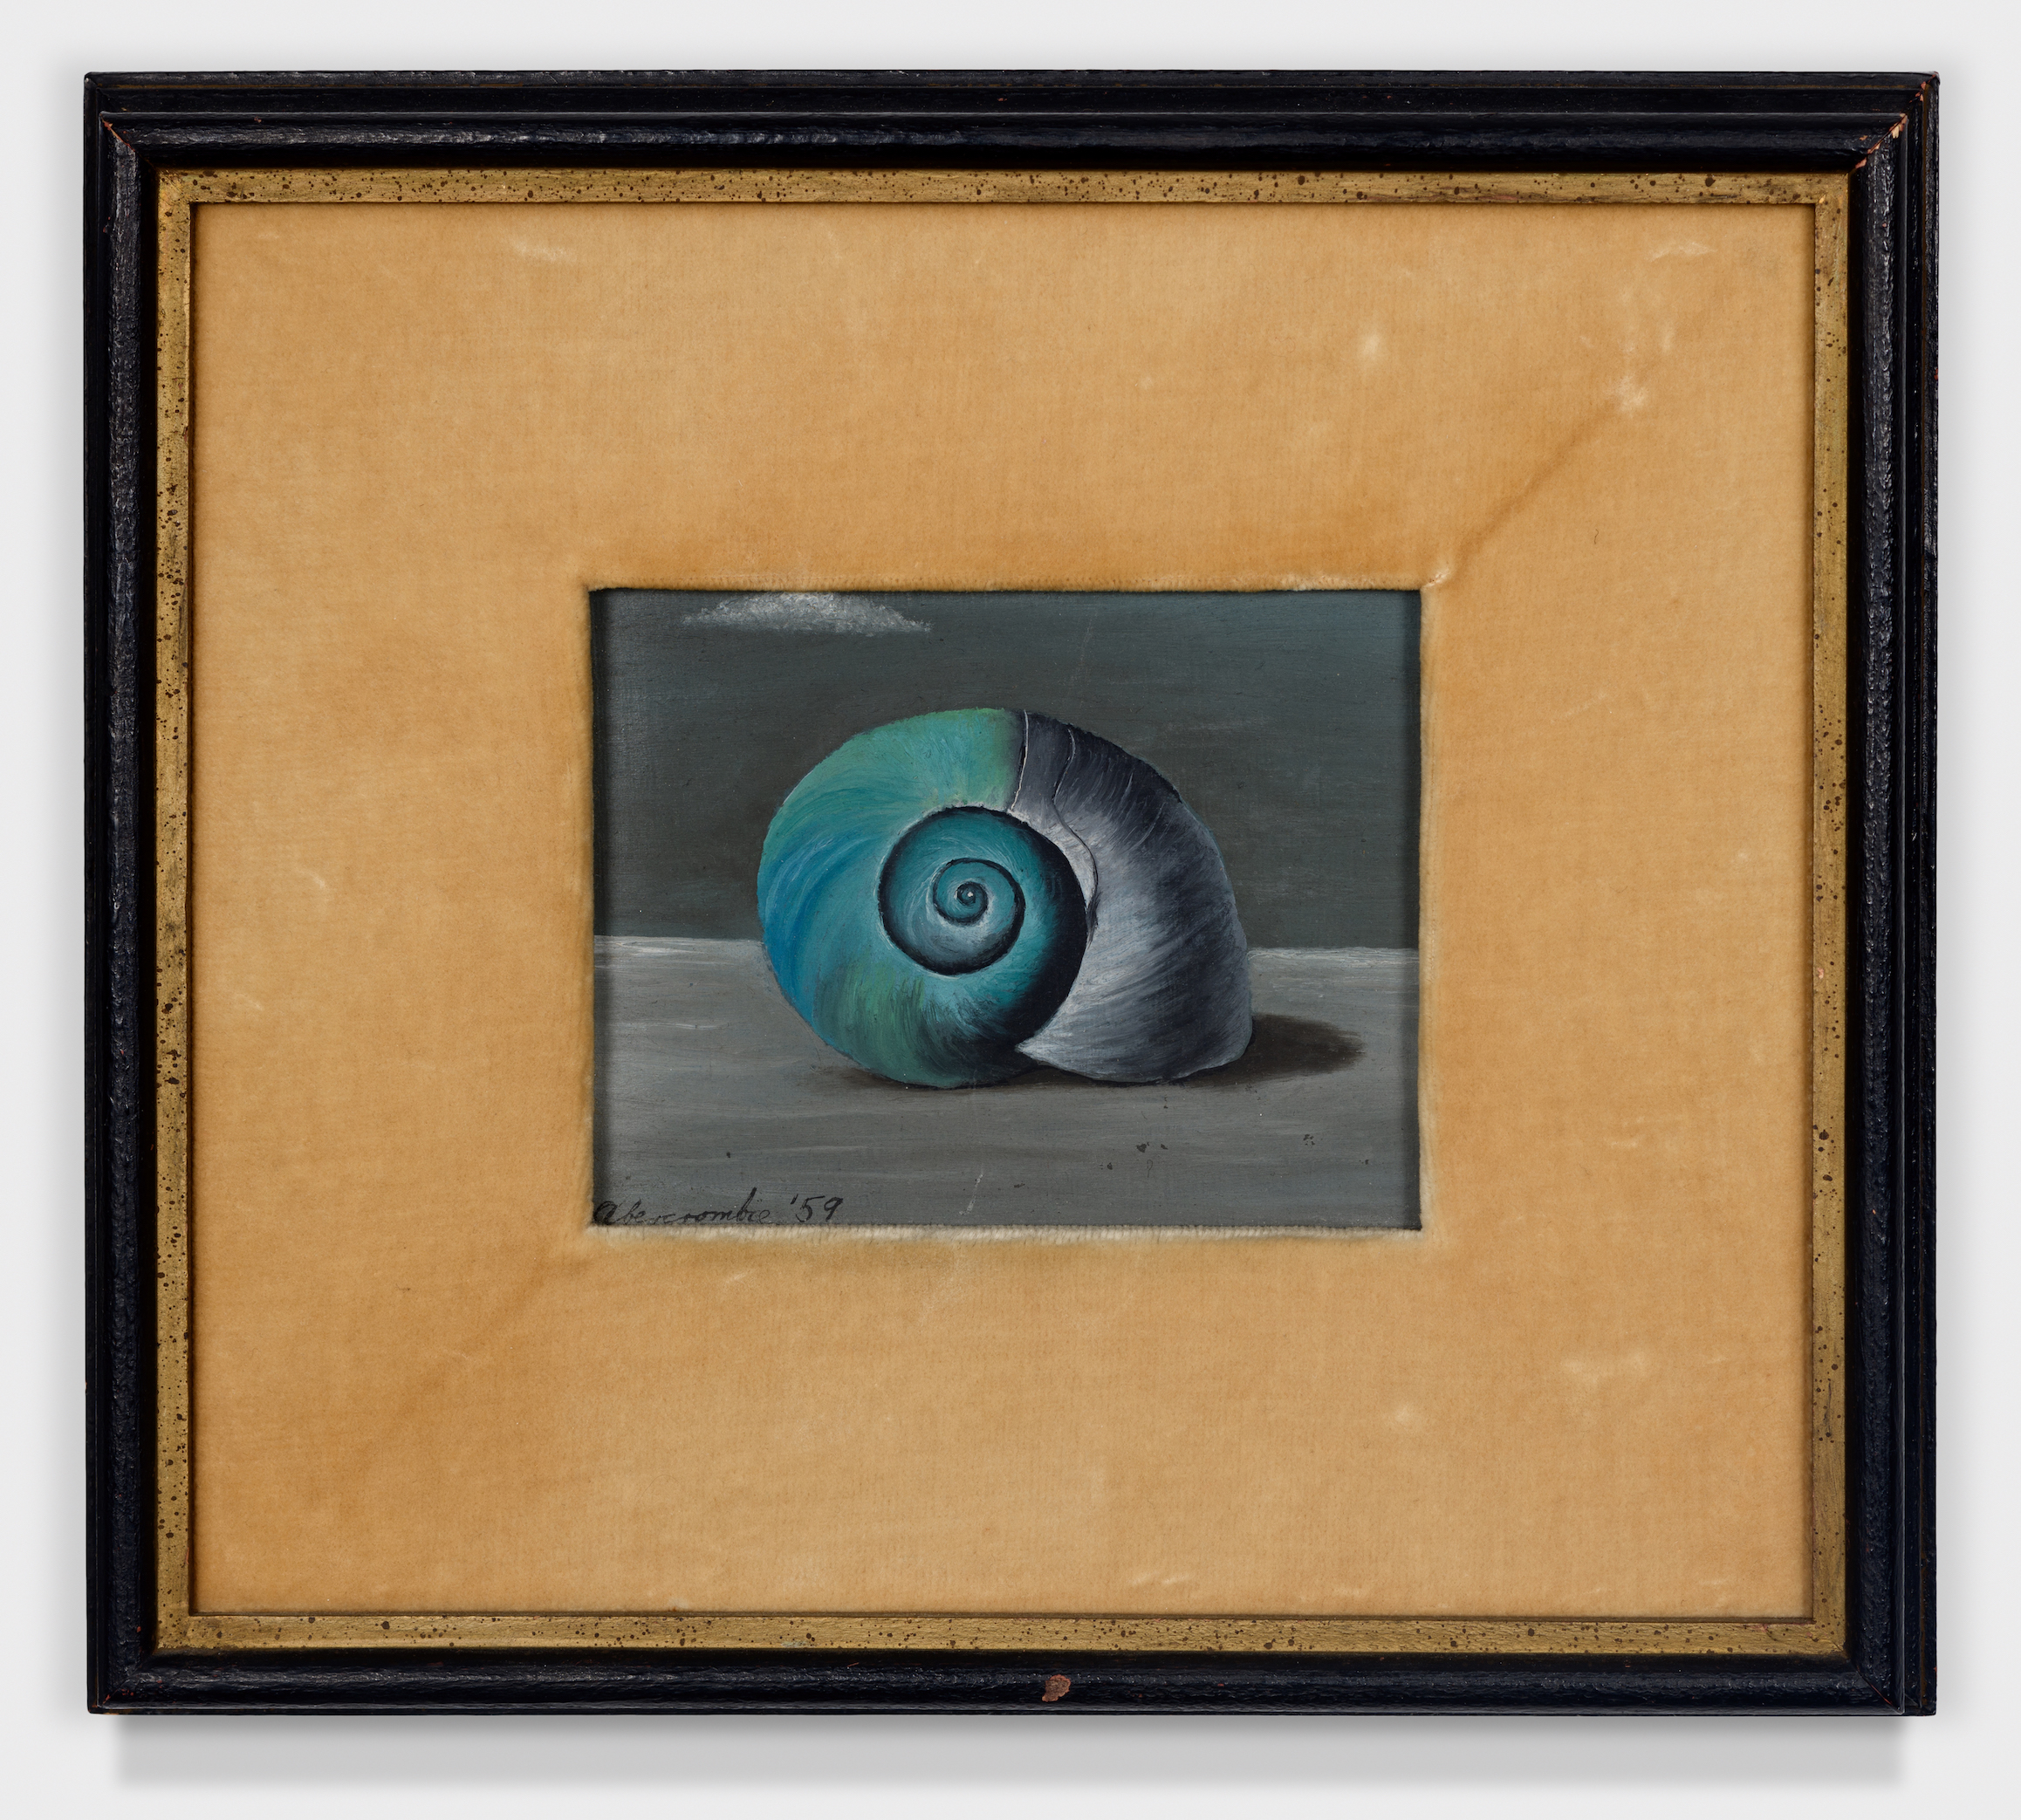 Shell,  1959, Oil on masonite, 4 × 5 inches (unframed); 8 1/2 × 9 1/2 inches (framed). Private collection, New York.